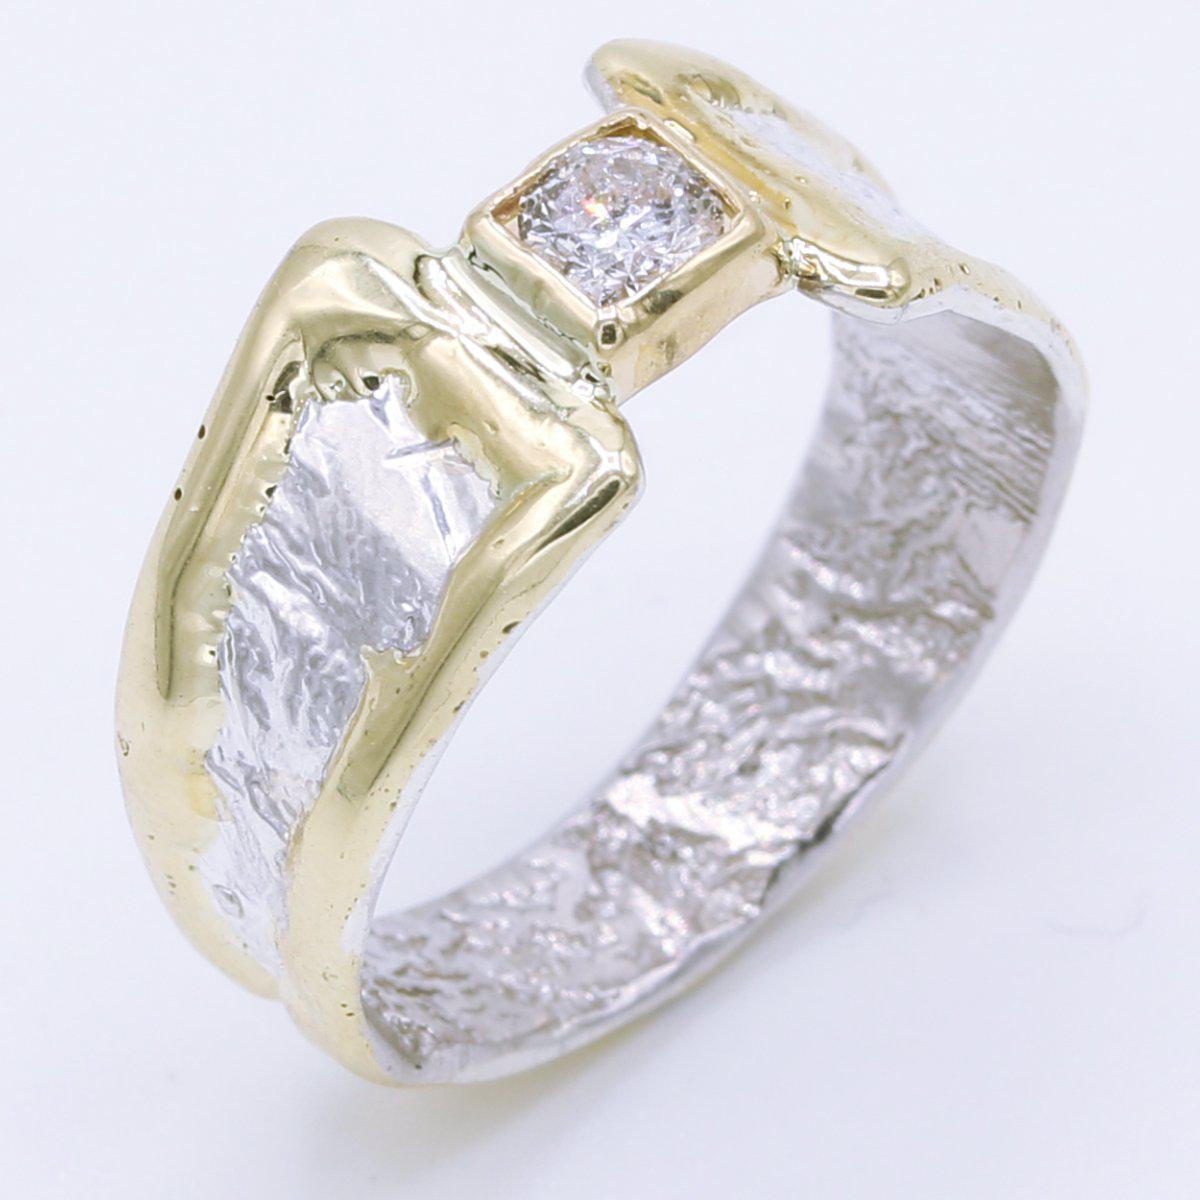 14K Gold & Crystalline Silver Diamond Ring - 34895-Fusion Designs-Renee Taylor Gallery